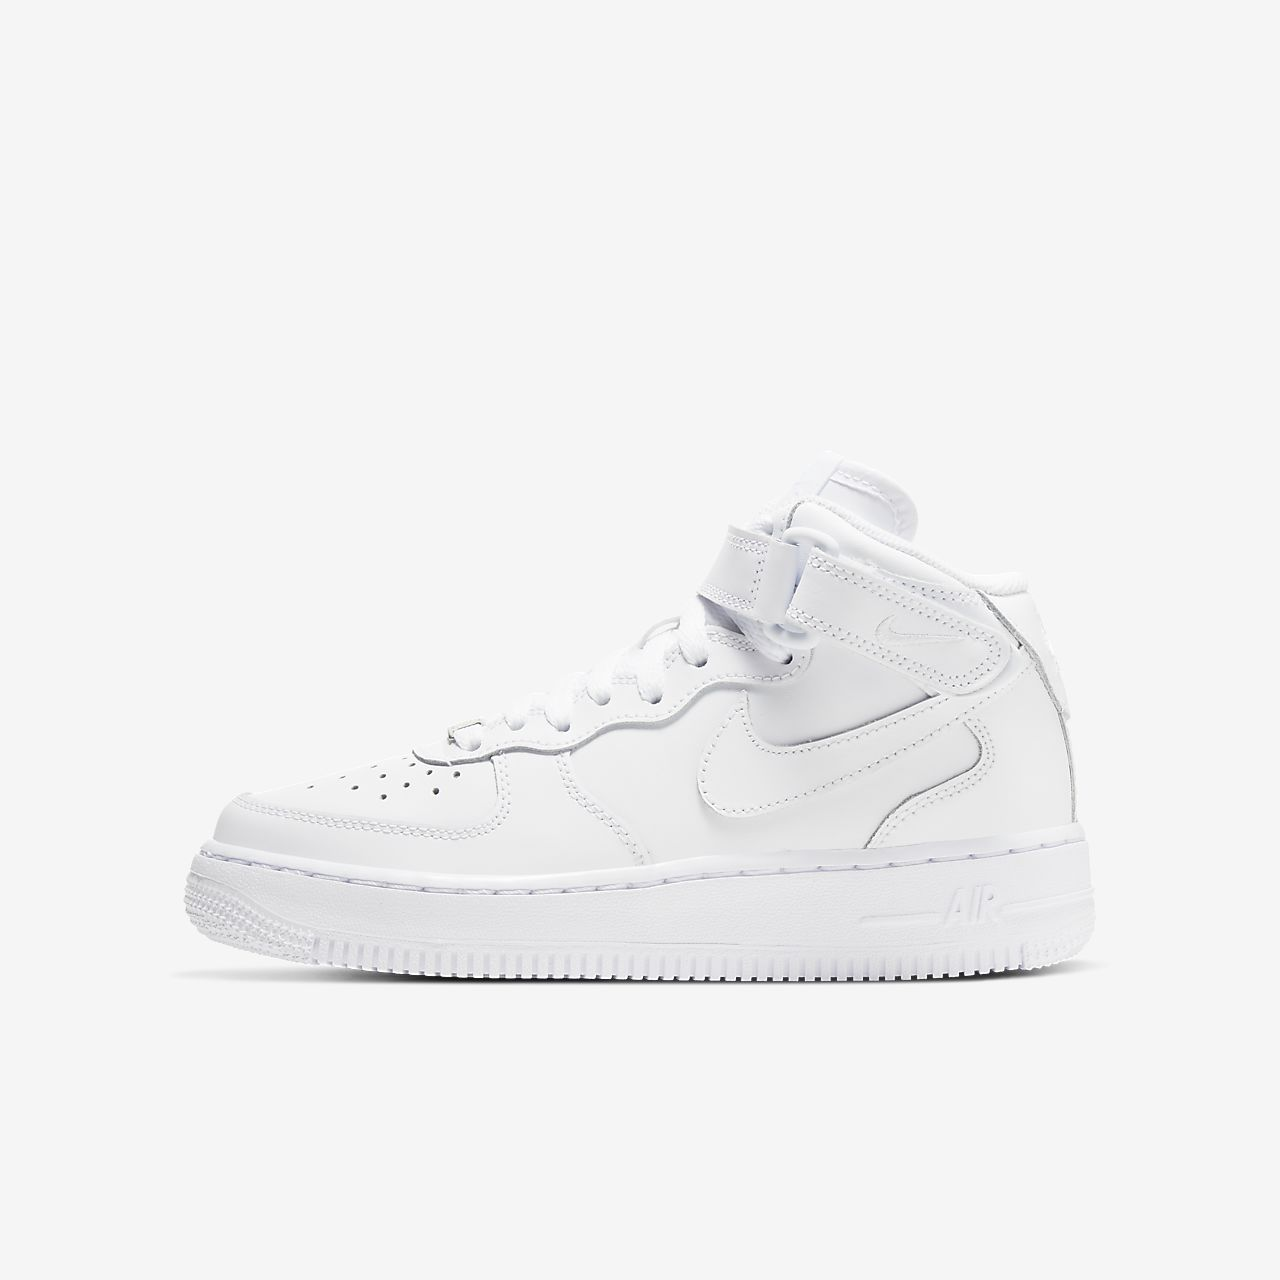 3dac8a769033 Nike Air Force 1 Mid 06 Big Kids  Shoe. Nike.com